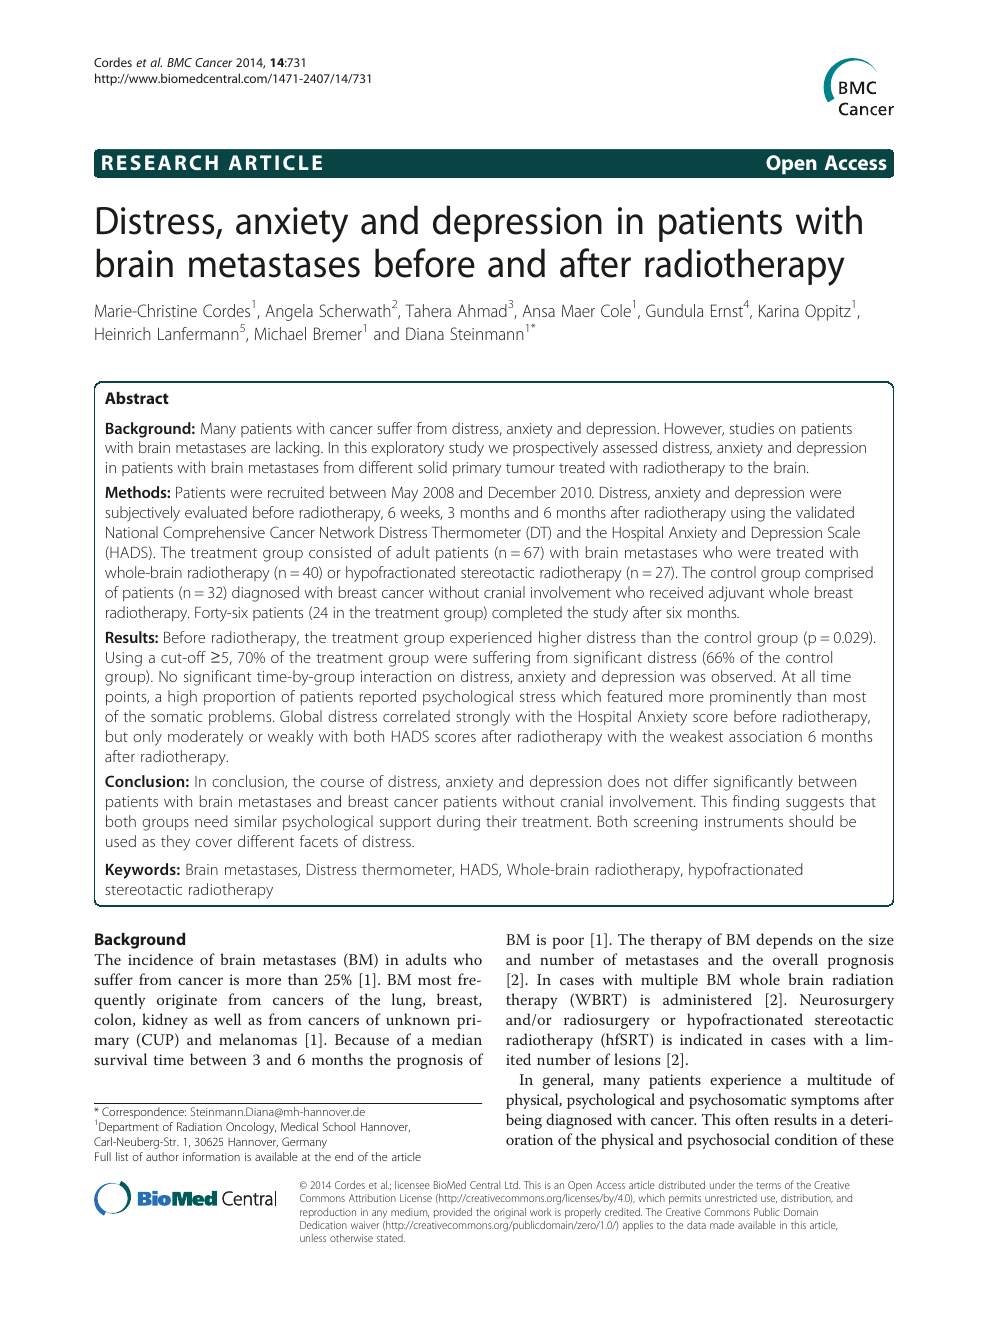 Distress Anxiety And Depression In Patients With Brain Metastases Before And After Radiotherapy Topic Of Research Paper In Clinical Medicine Download Scholarly Article Pdf And Read For Free On Cyberleninka Open